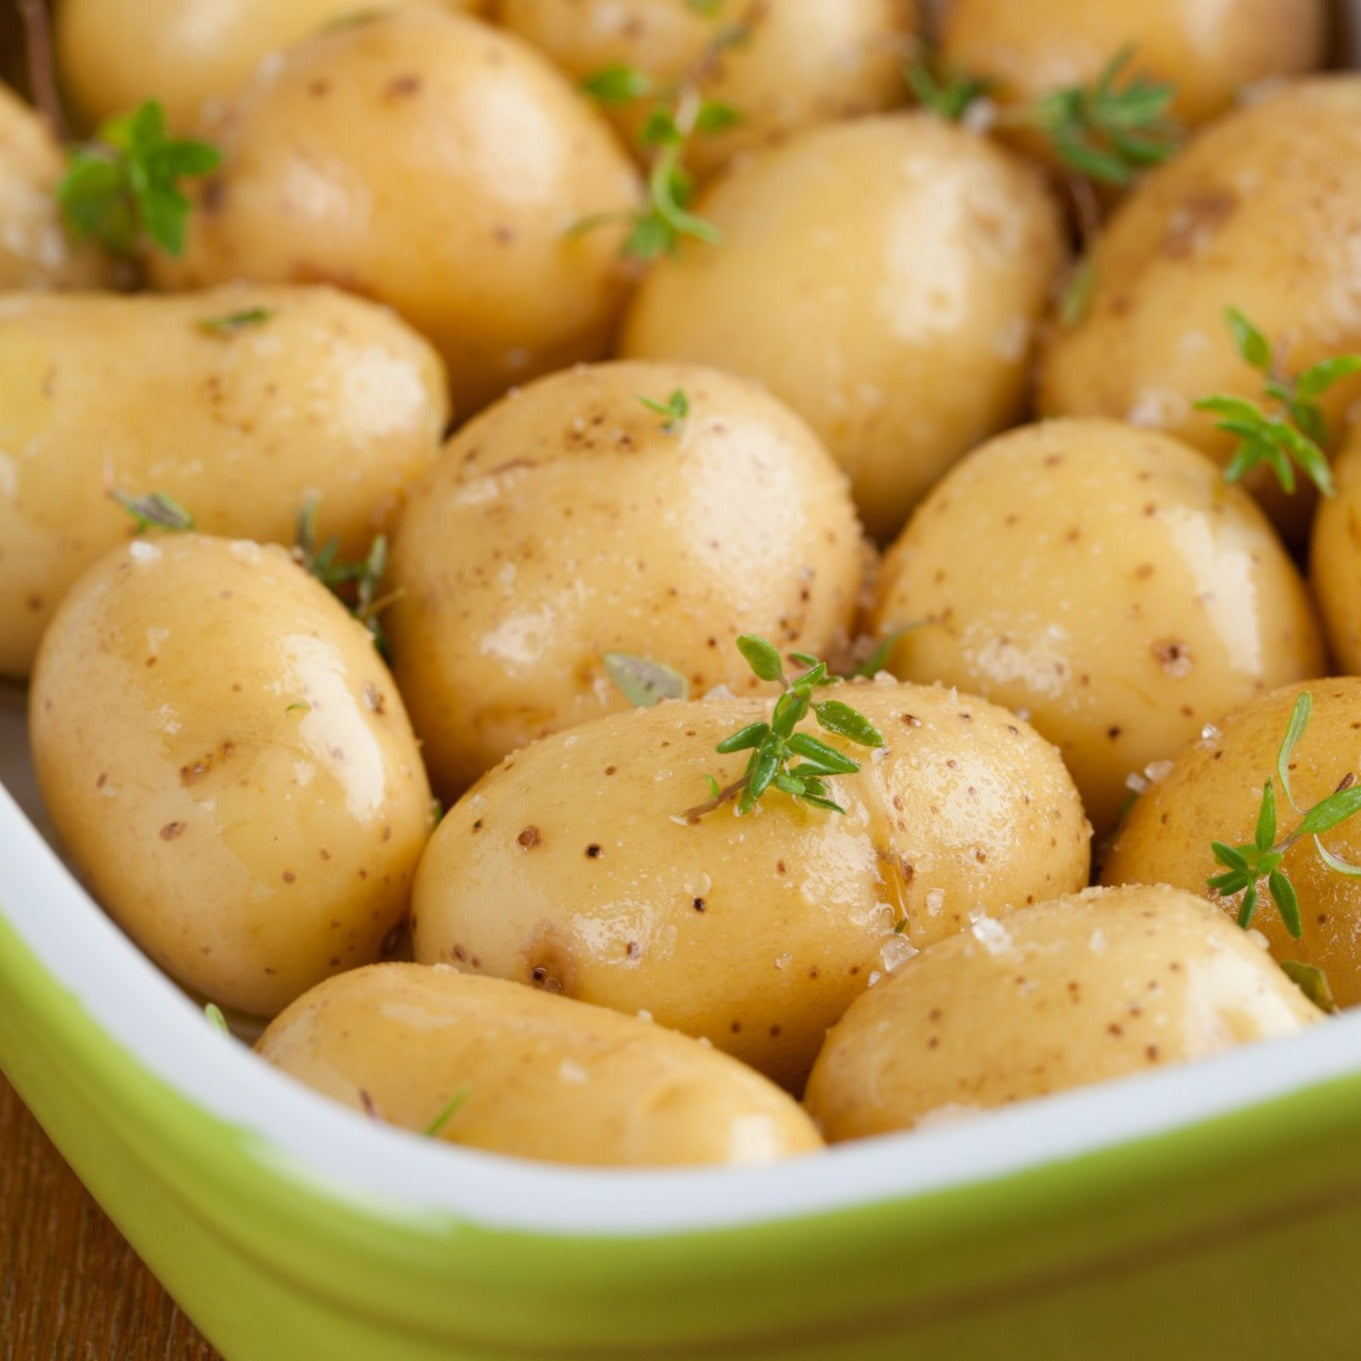 Parsley Butter Potatoes